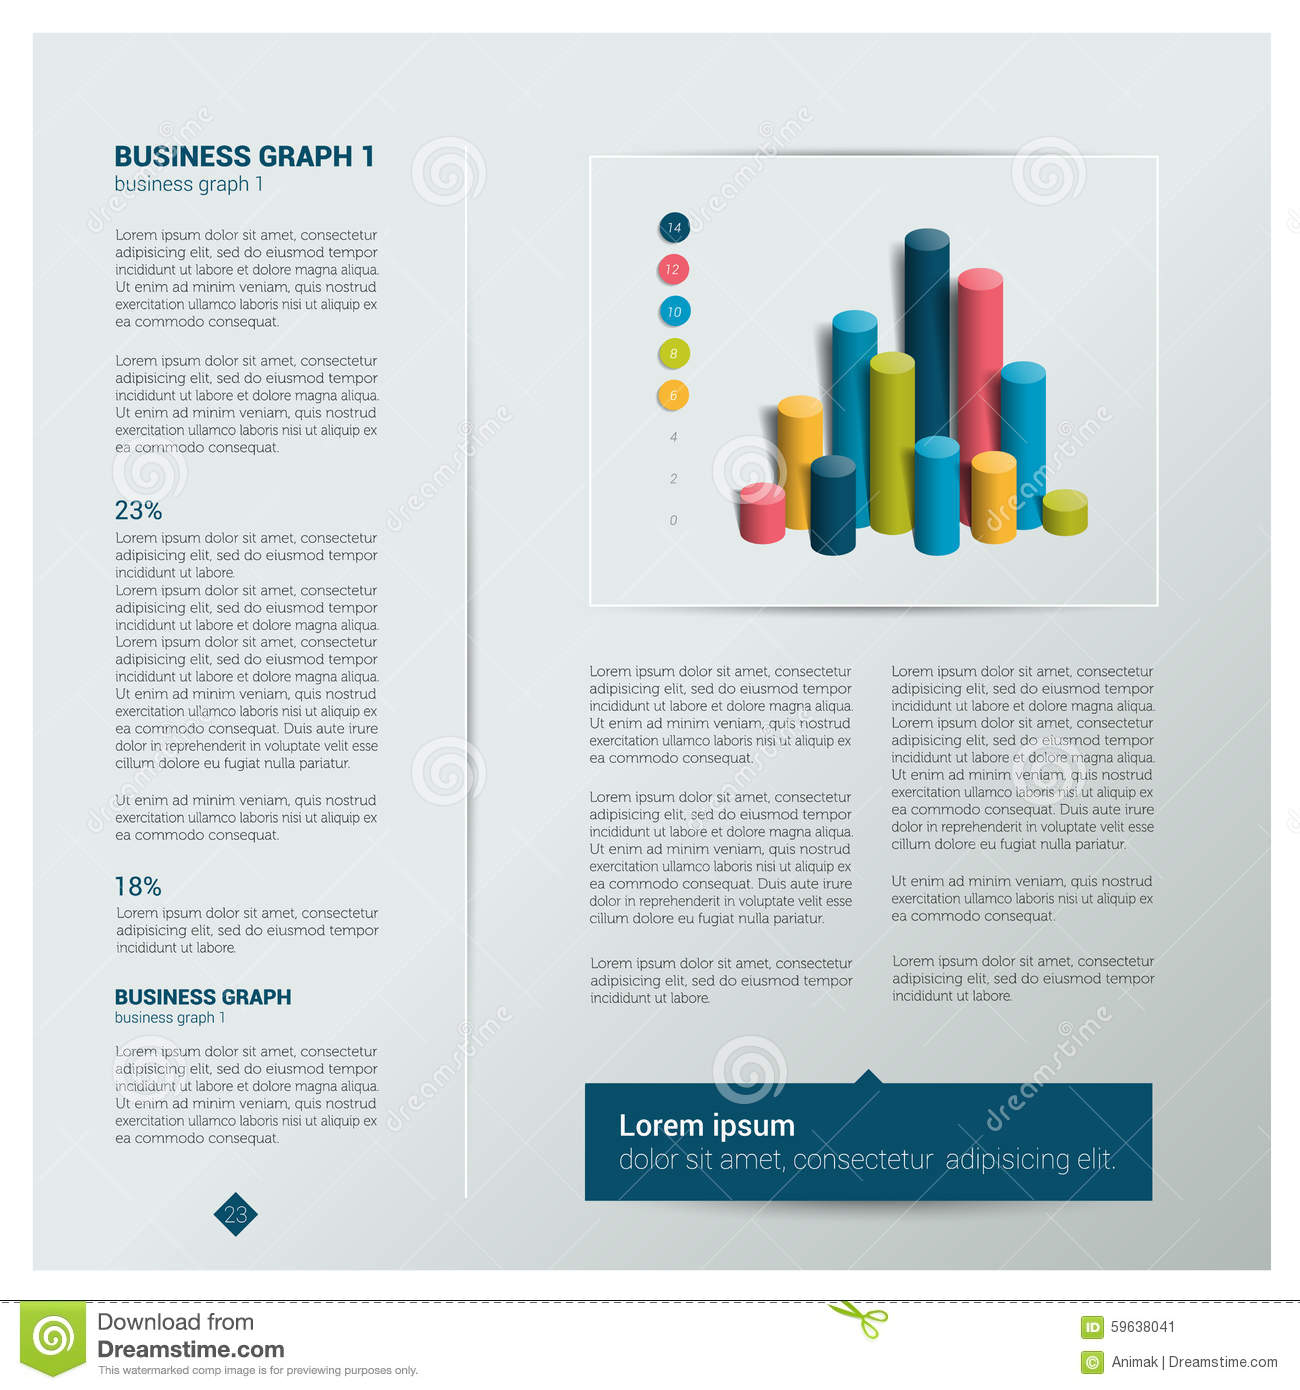 Newsletter examples business reports